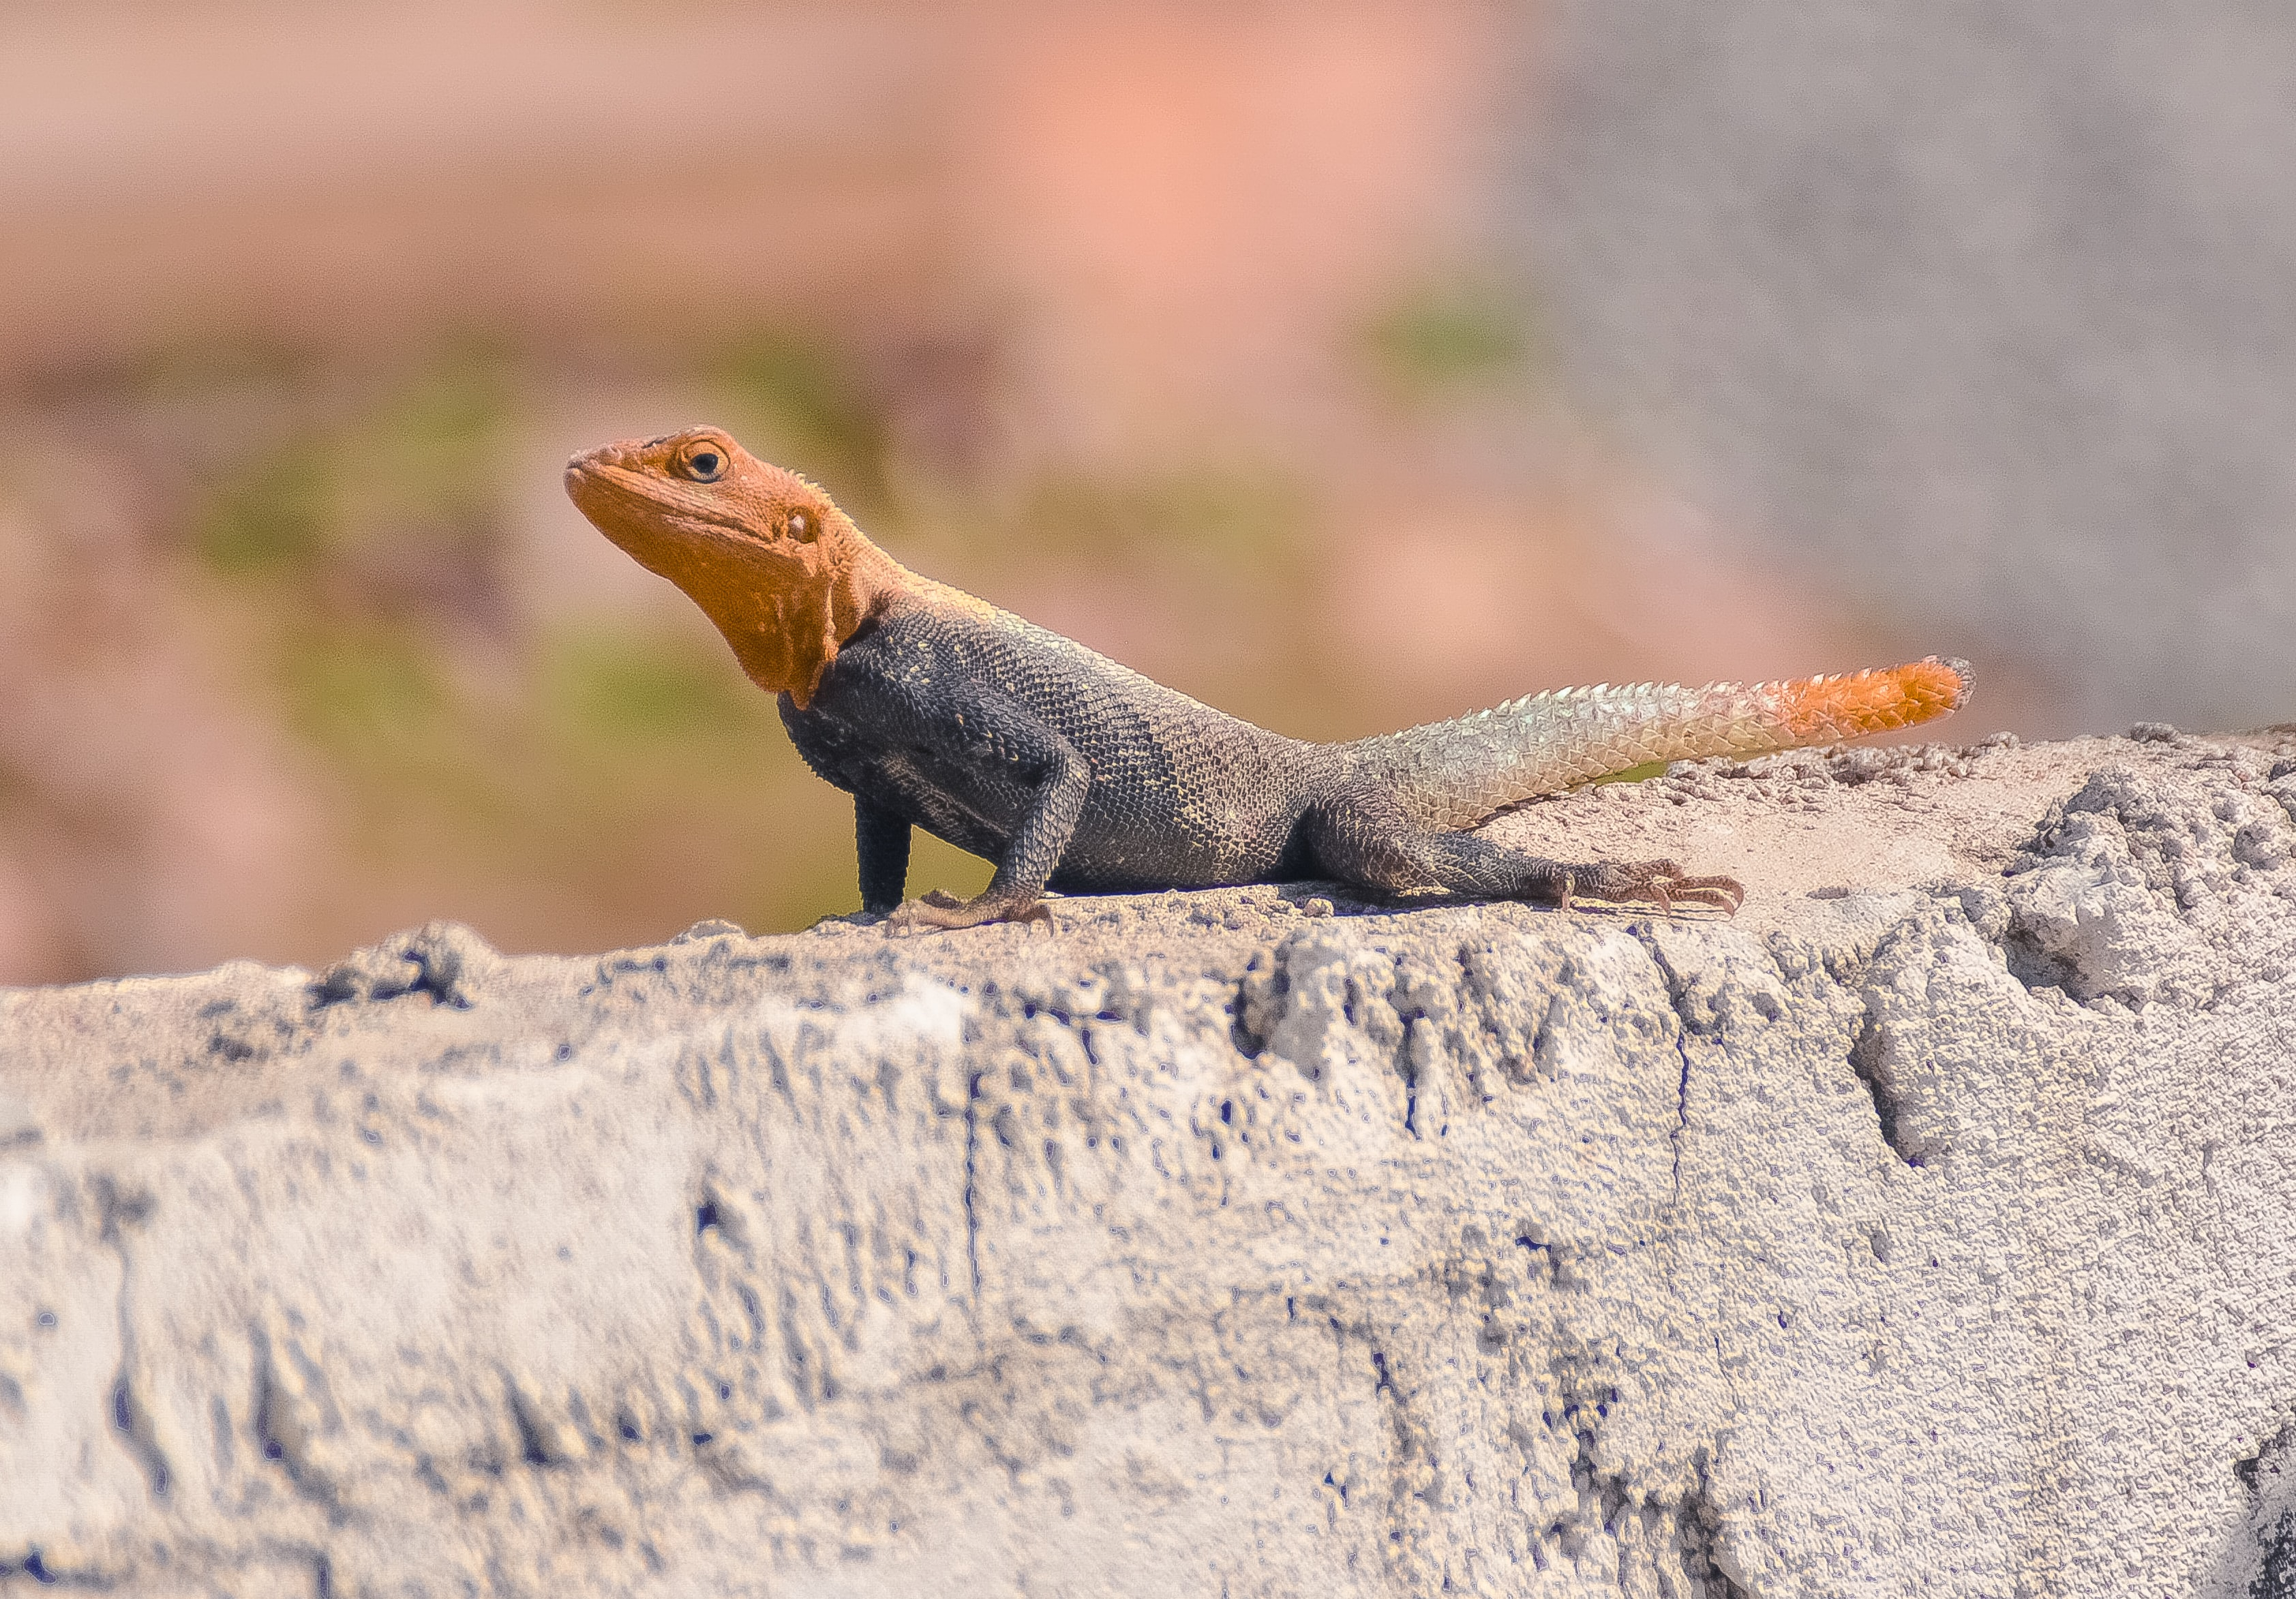 focus photography of brown and orange lizard